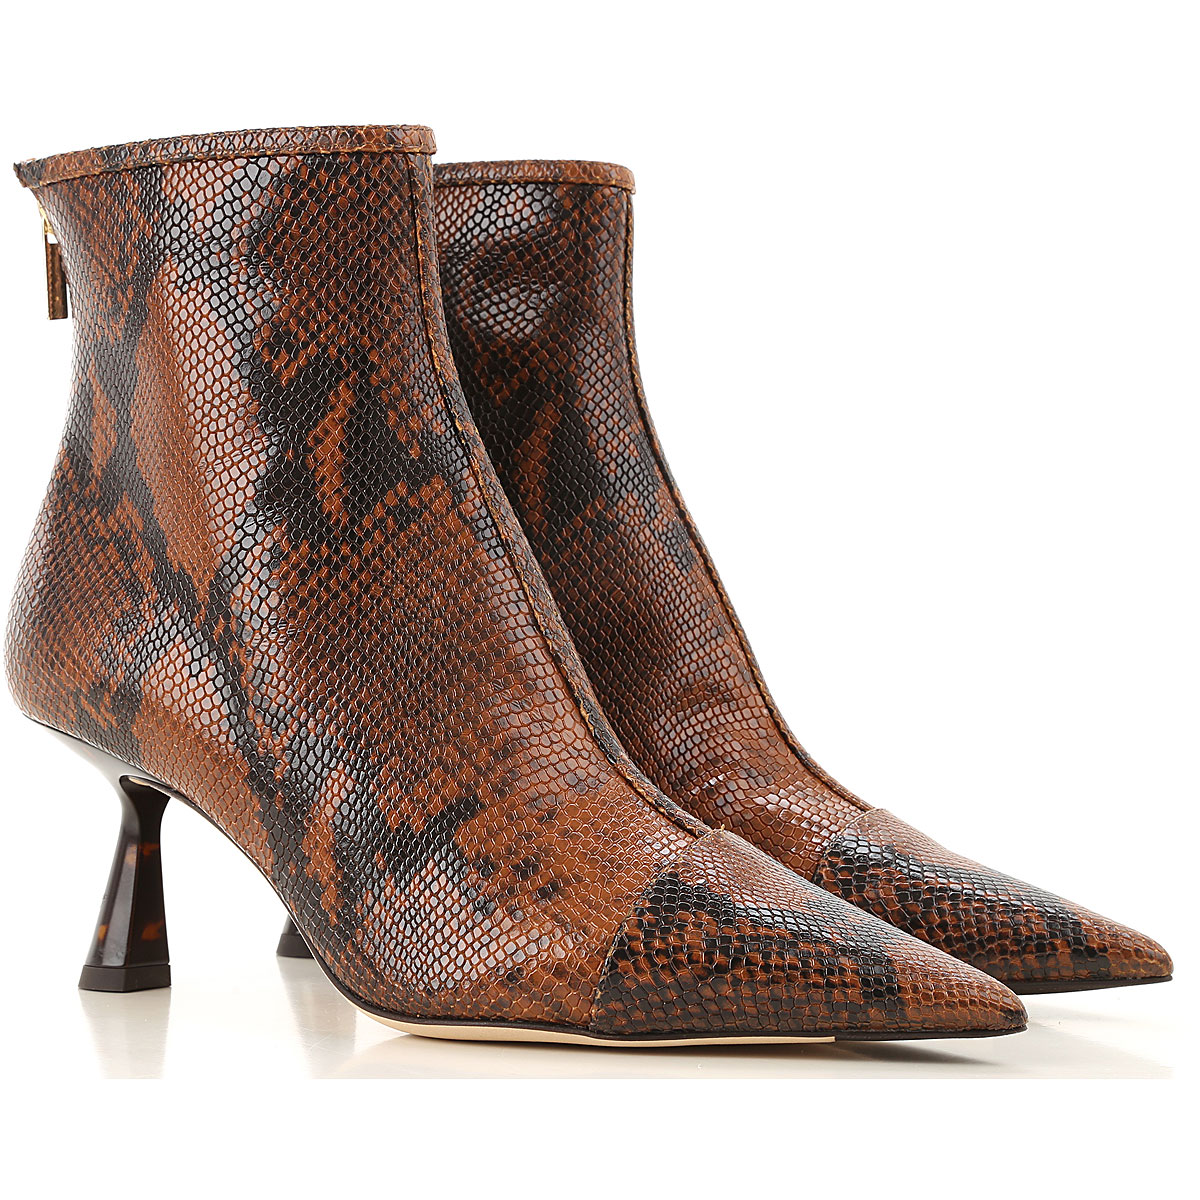 Jimmy Choo Boots for Women, Booties On Sale, Leather Brown, Leather, 2019, 11 6 8 9